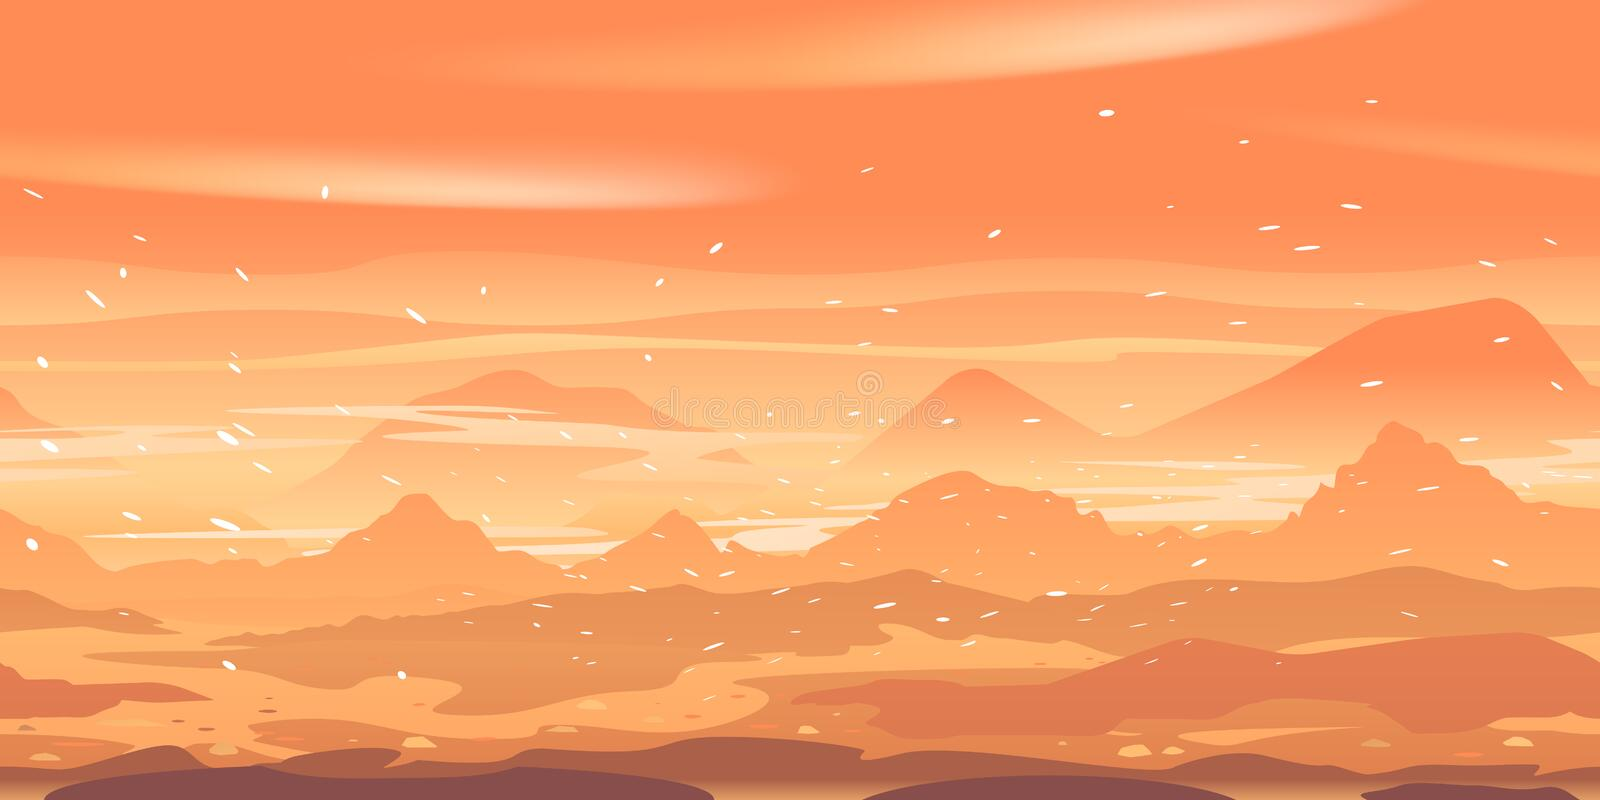 Sandstorm on Mars landscape game background. Sandstorm on planet Mars landscape game background tillable horizontally, sand hills and mountains in dust on a vector illustration